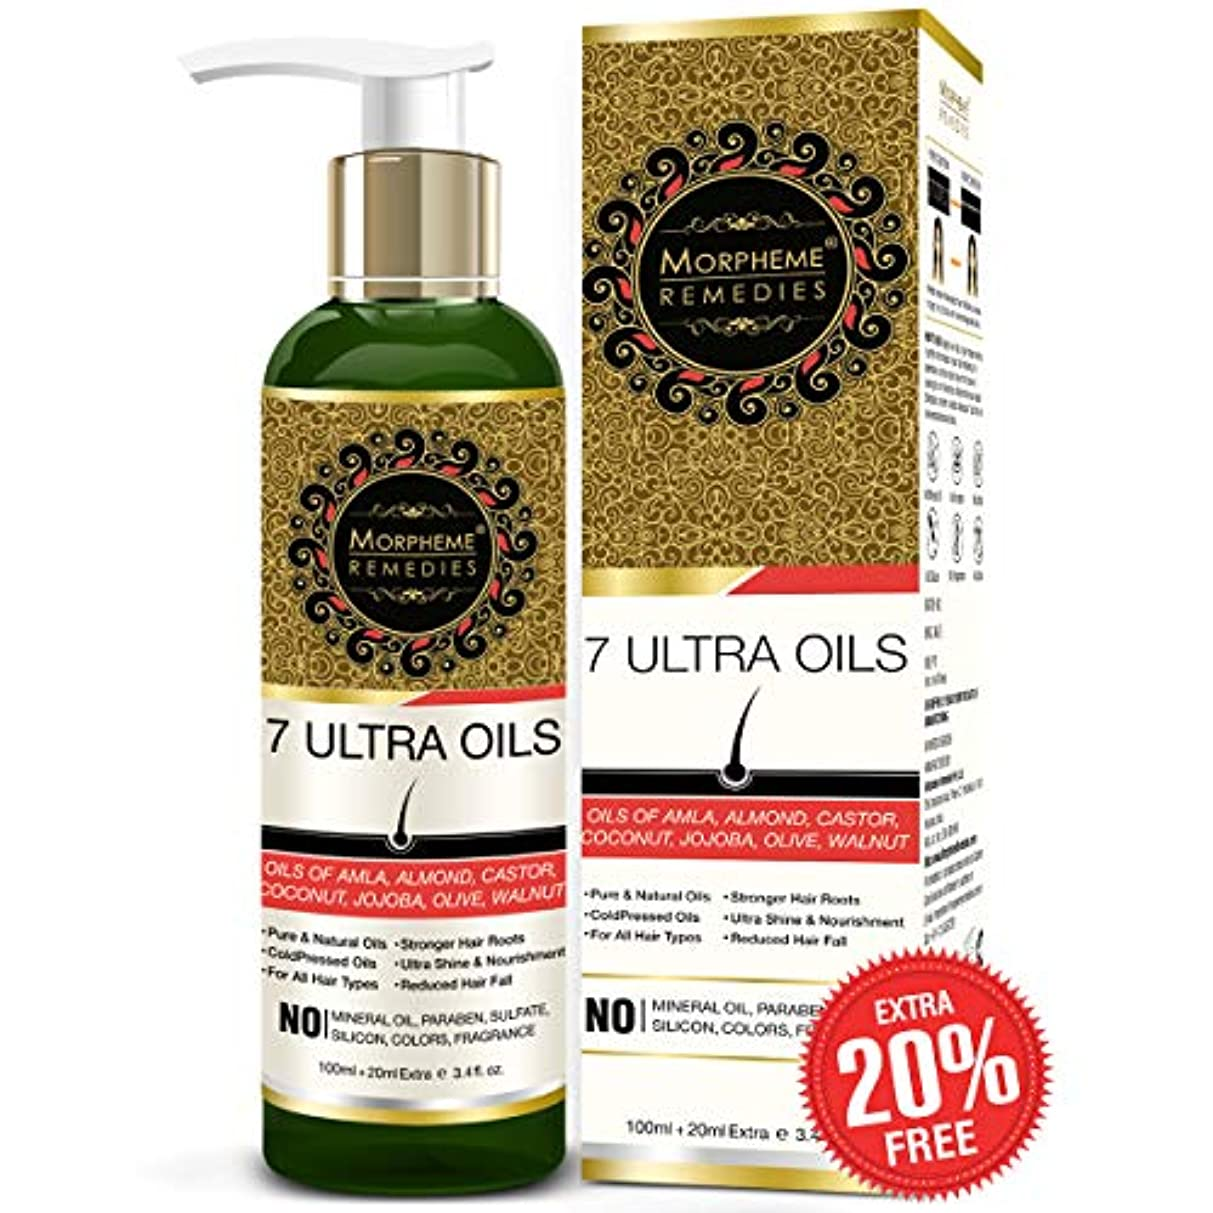 絶妙警戒ブラウザMorpheme Remedies 7 Ultra Hair Oil - (Almond, Castor, Jojoba, Coconut, Olive, Walnut, Amla Oils) - 120 ml